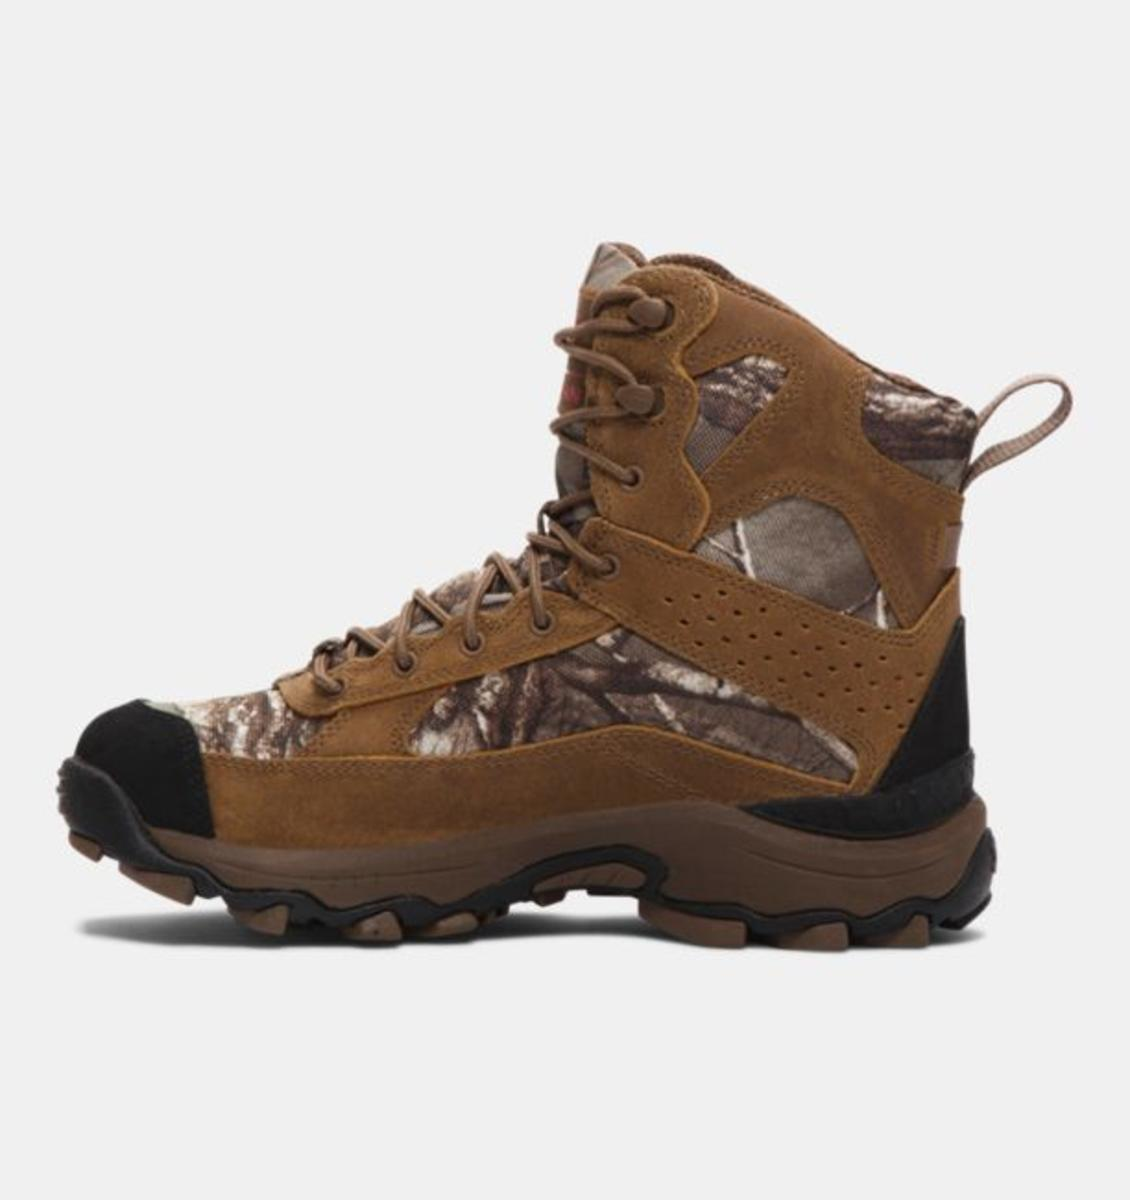 super cute 52b19 b0f37 Under Armour Women's UA Speed Freek Bozeman Hunting Boots - The Warming  Store